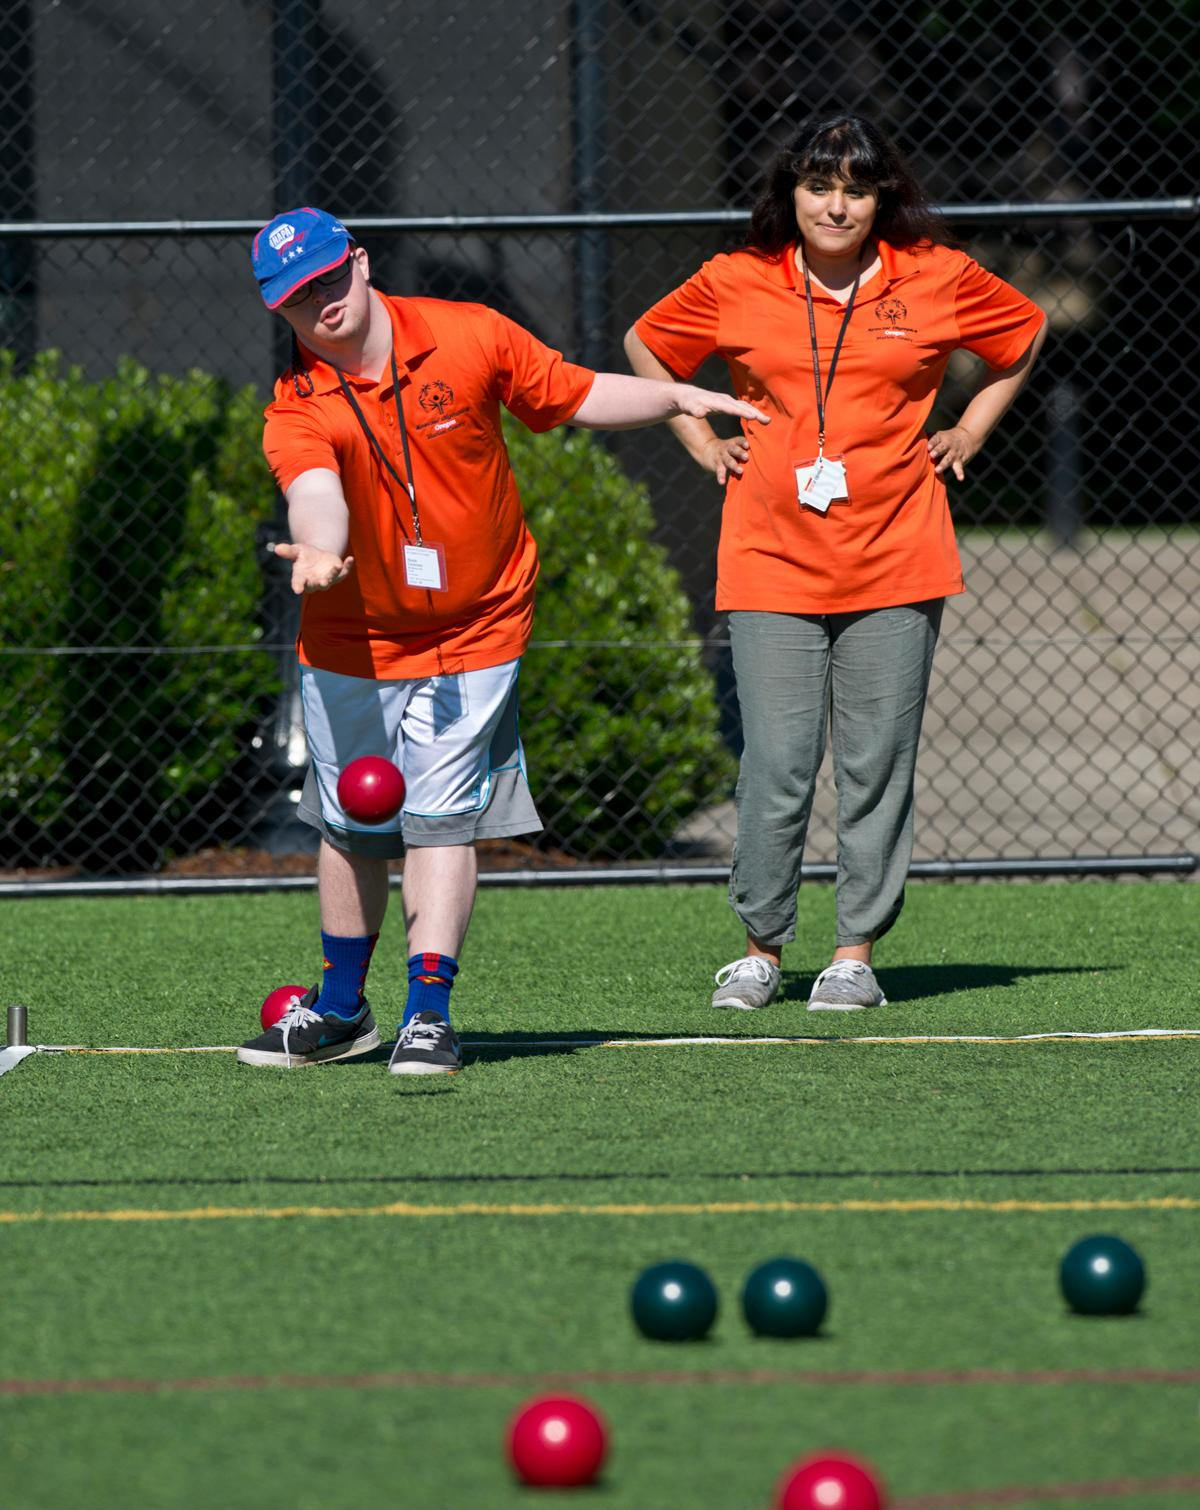 Special Olympics Oregon held its competition at Oregon State University's sports complex and Corvallis High School's track on Saturday. The athletes competed in  golf, softball, track & field, wheel chair races and bocce. Photo by Dan Morrison, Oregon News Lab